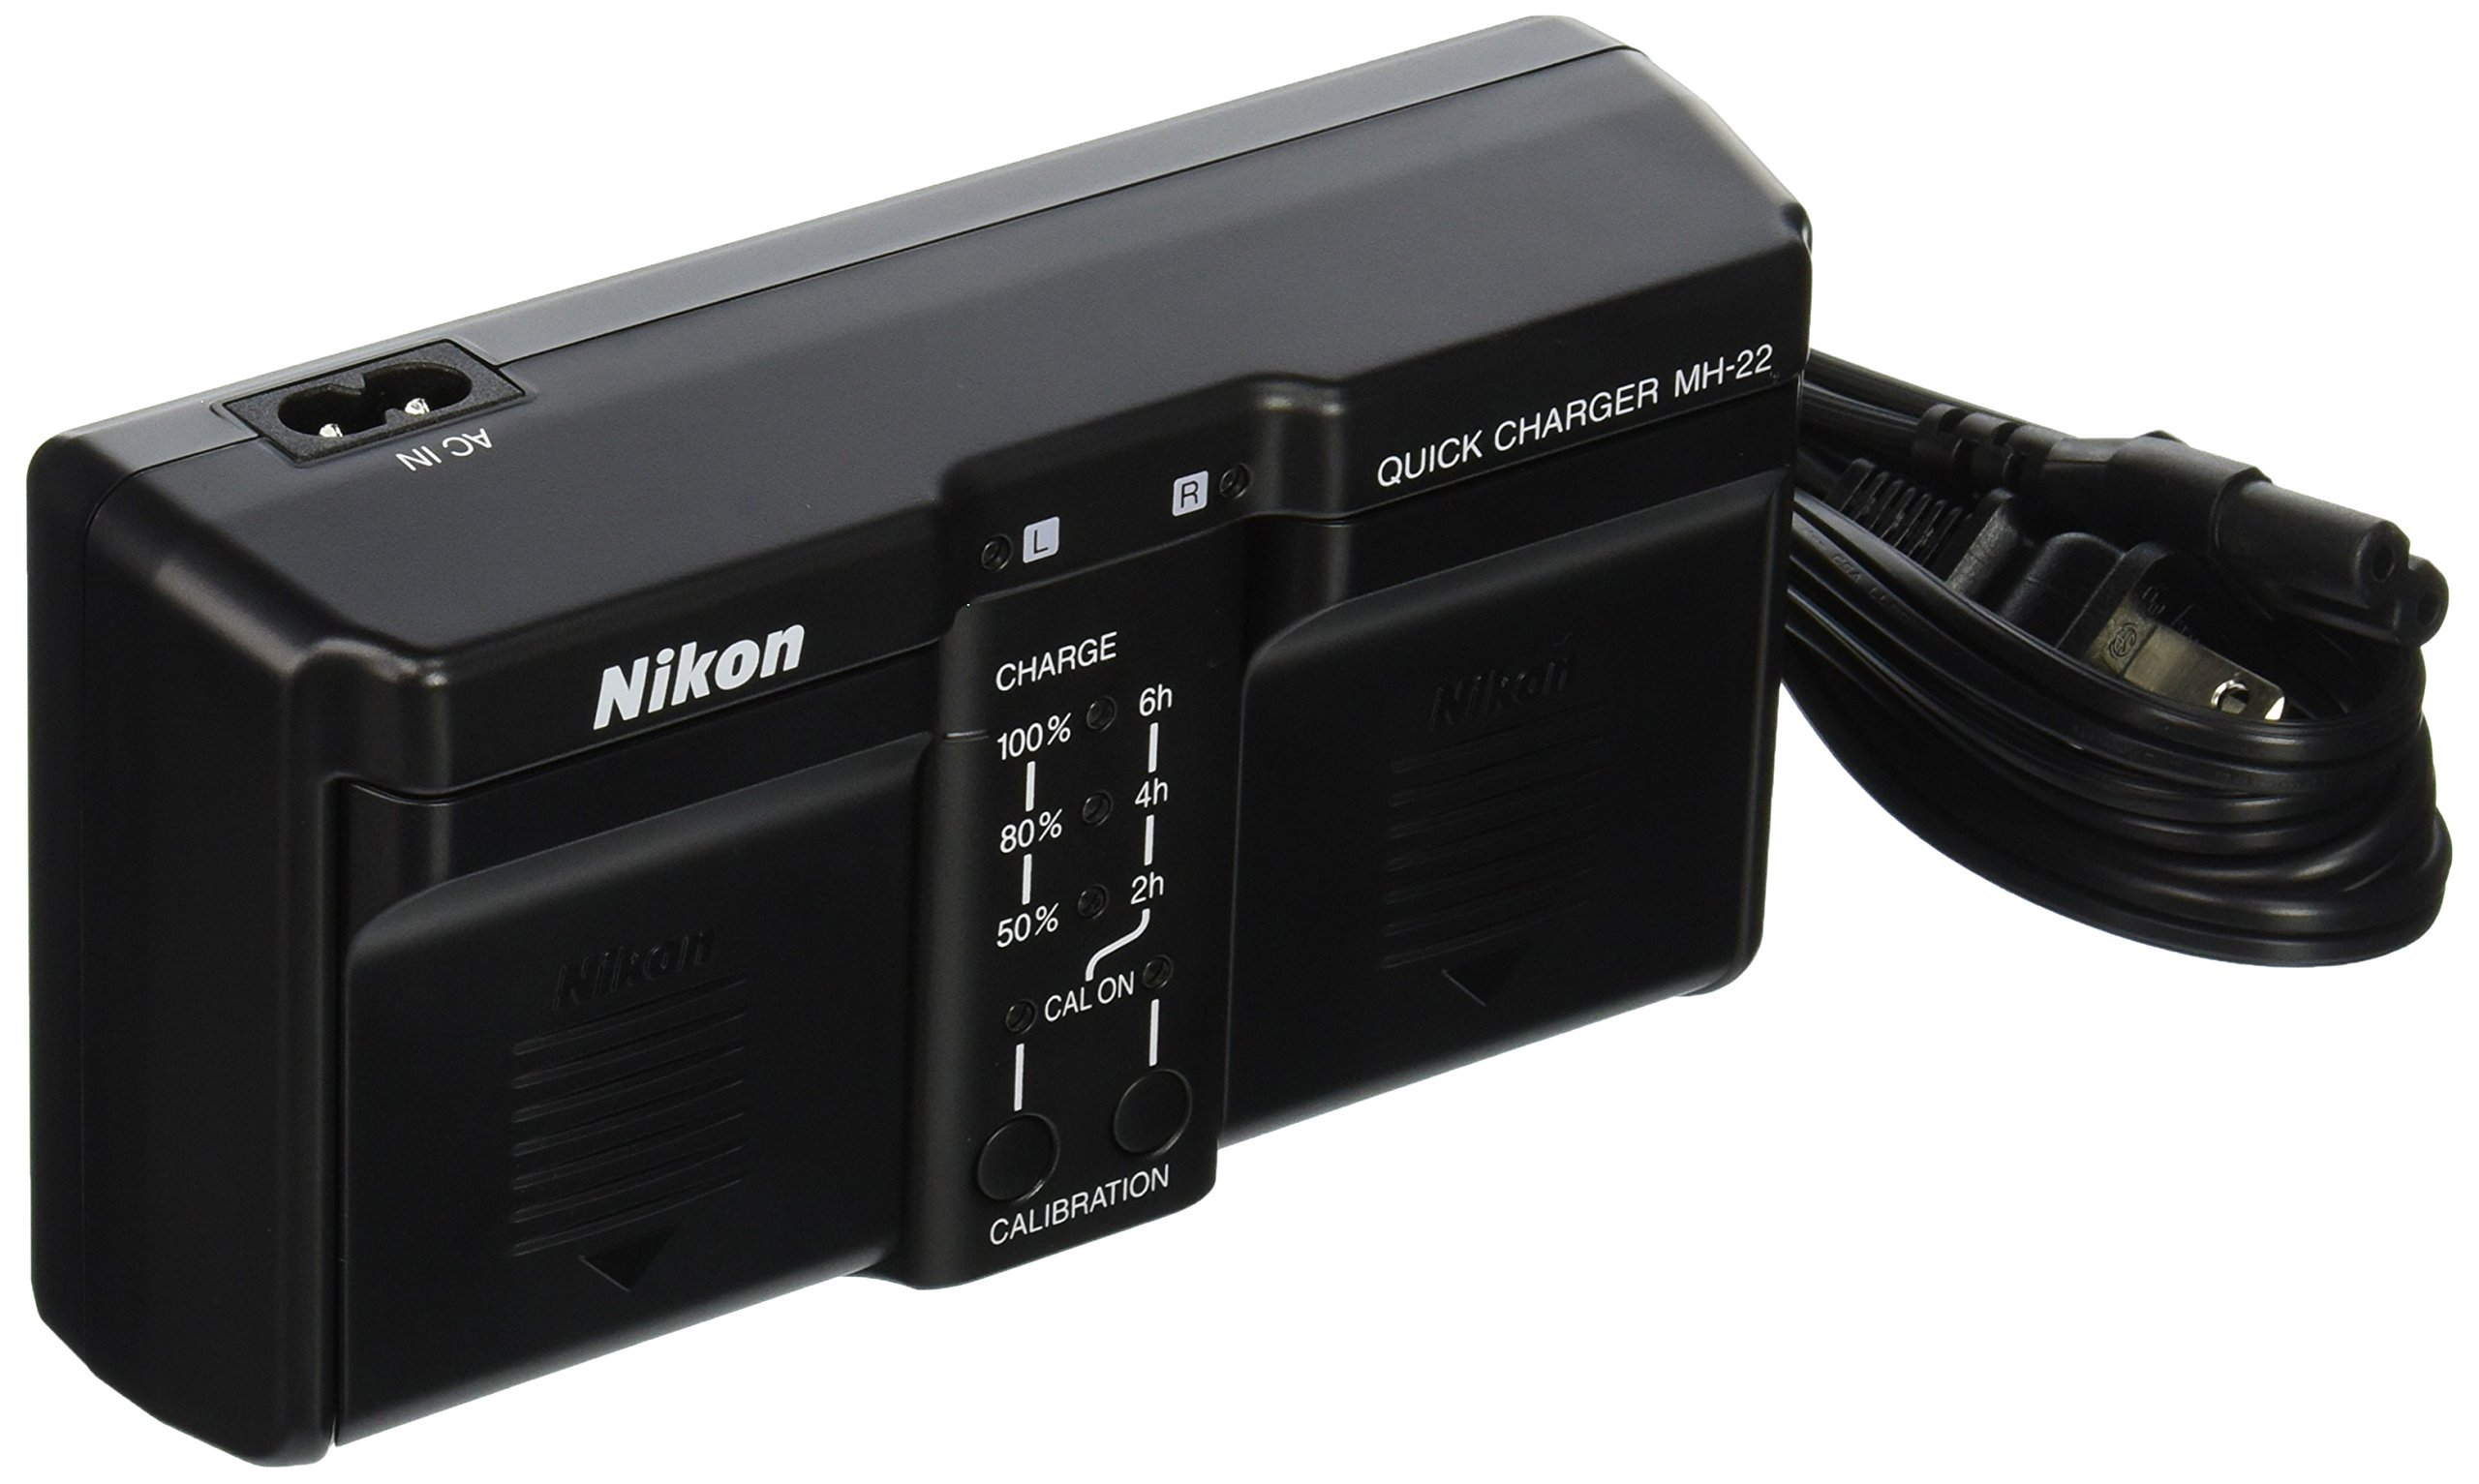 Nikon MH-22 Quick Charger for EN-EL4 and EN-EL4A Batteries by Nikon